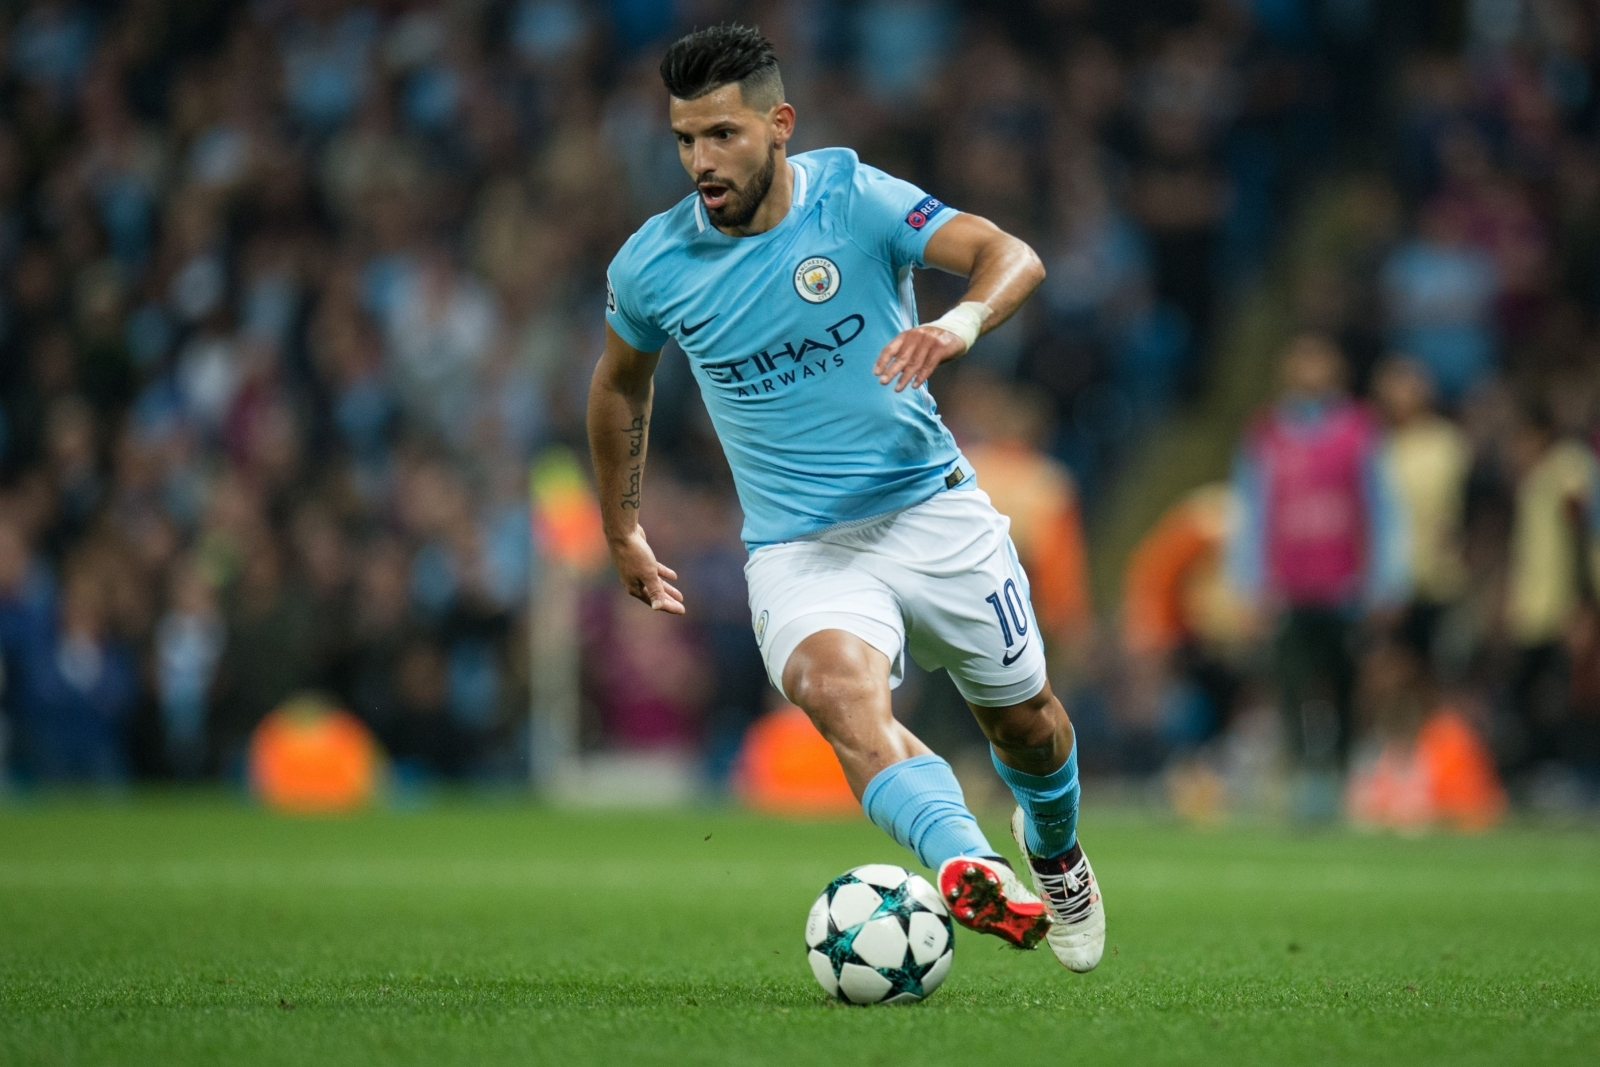 Doctor reveals Sergio Aguero 'CAN'T MOVE' after Amsterdam auto crash